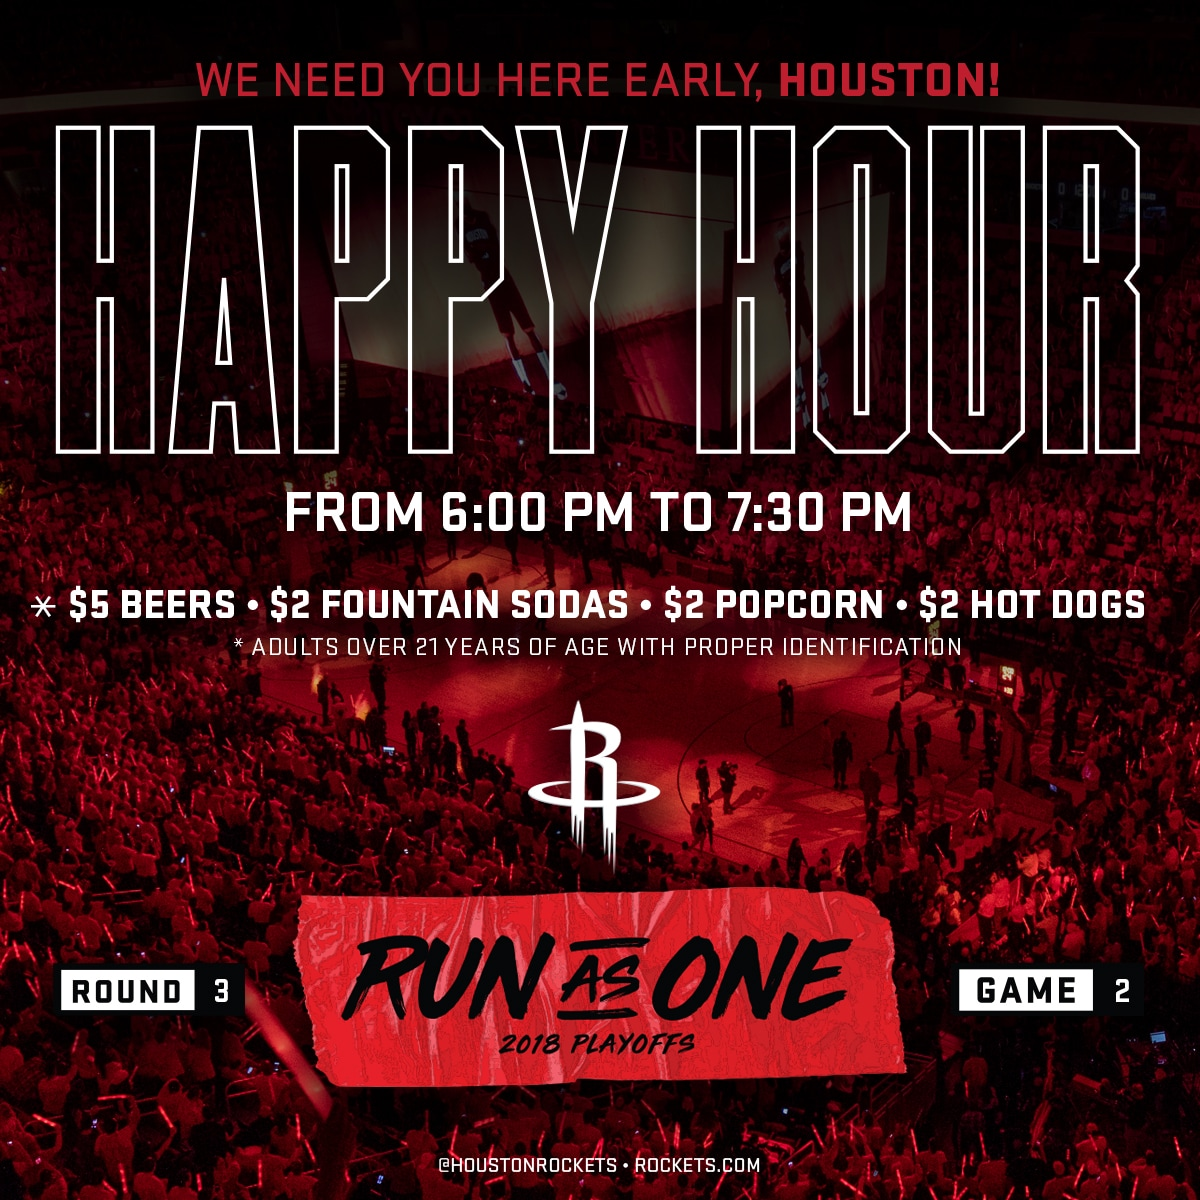 Happy Hour is Back for Game 2